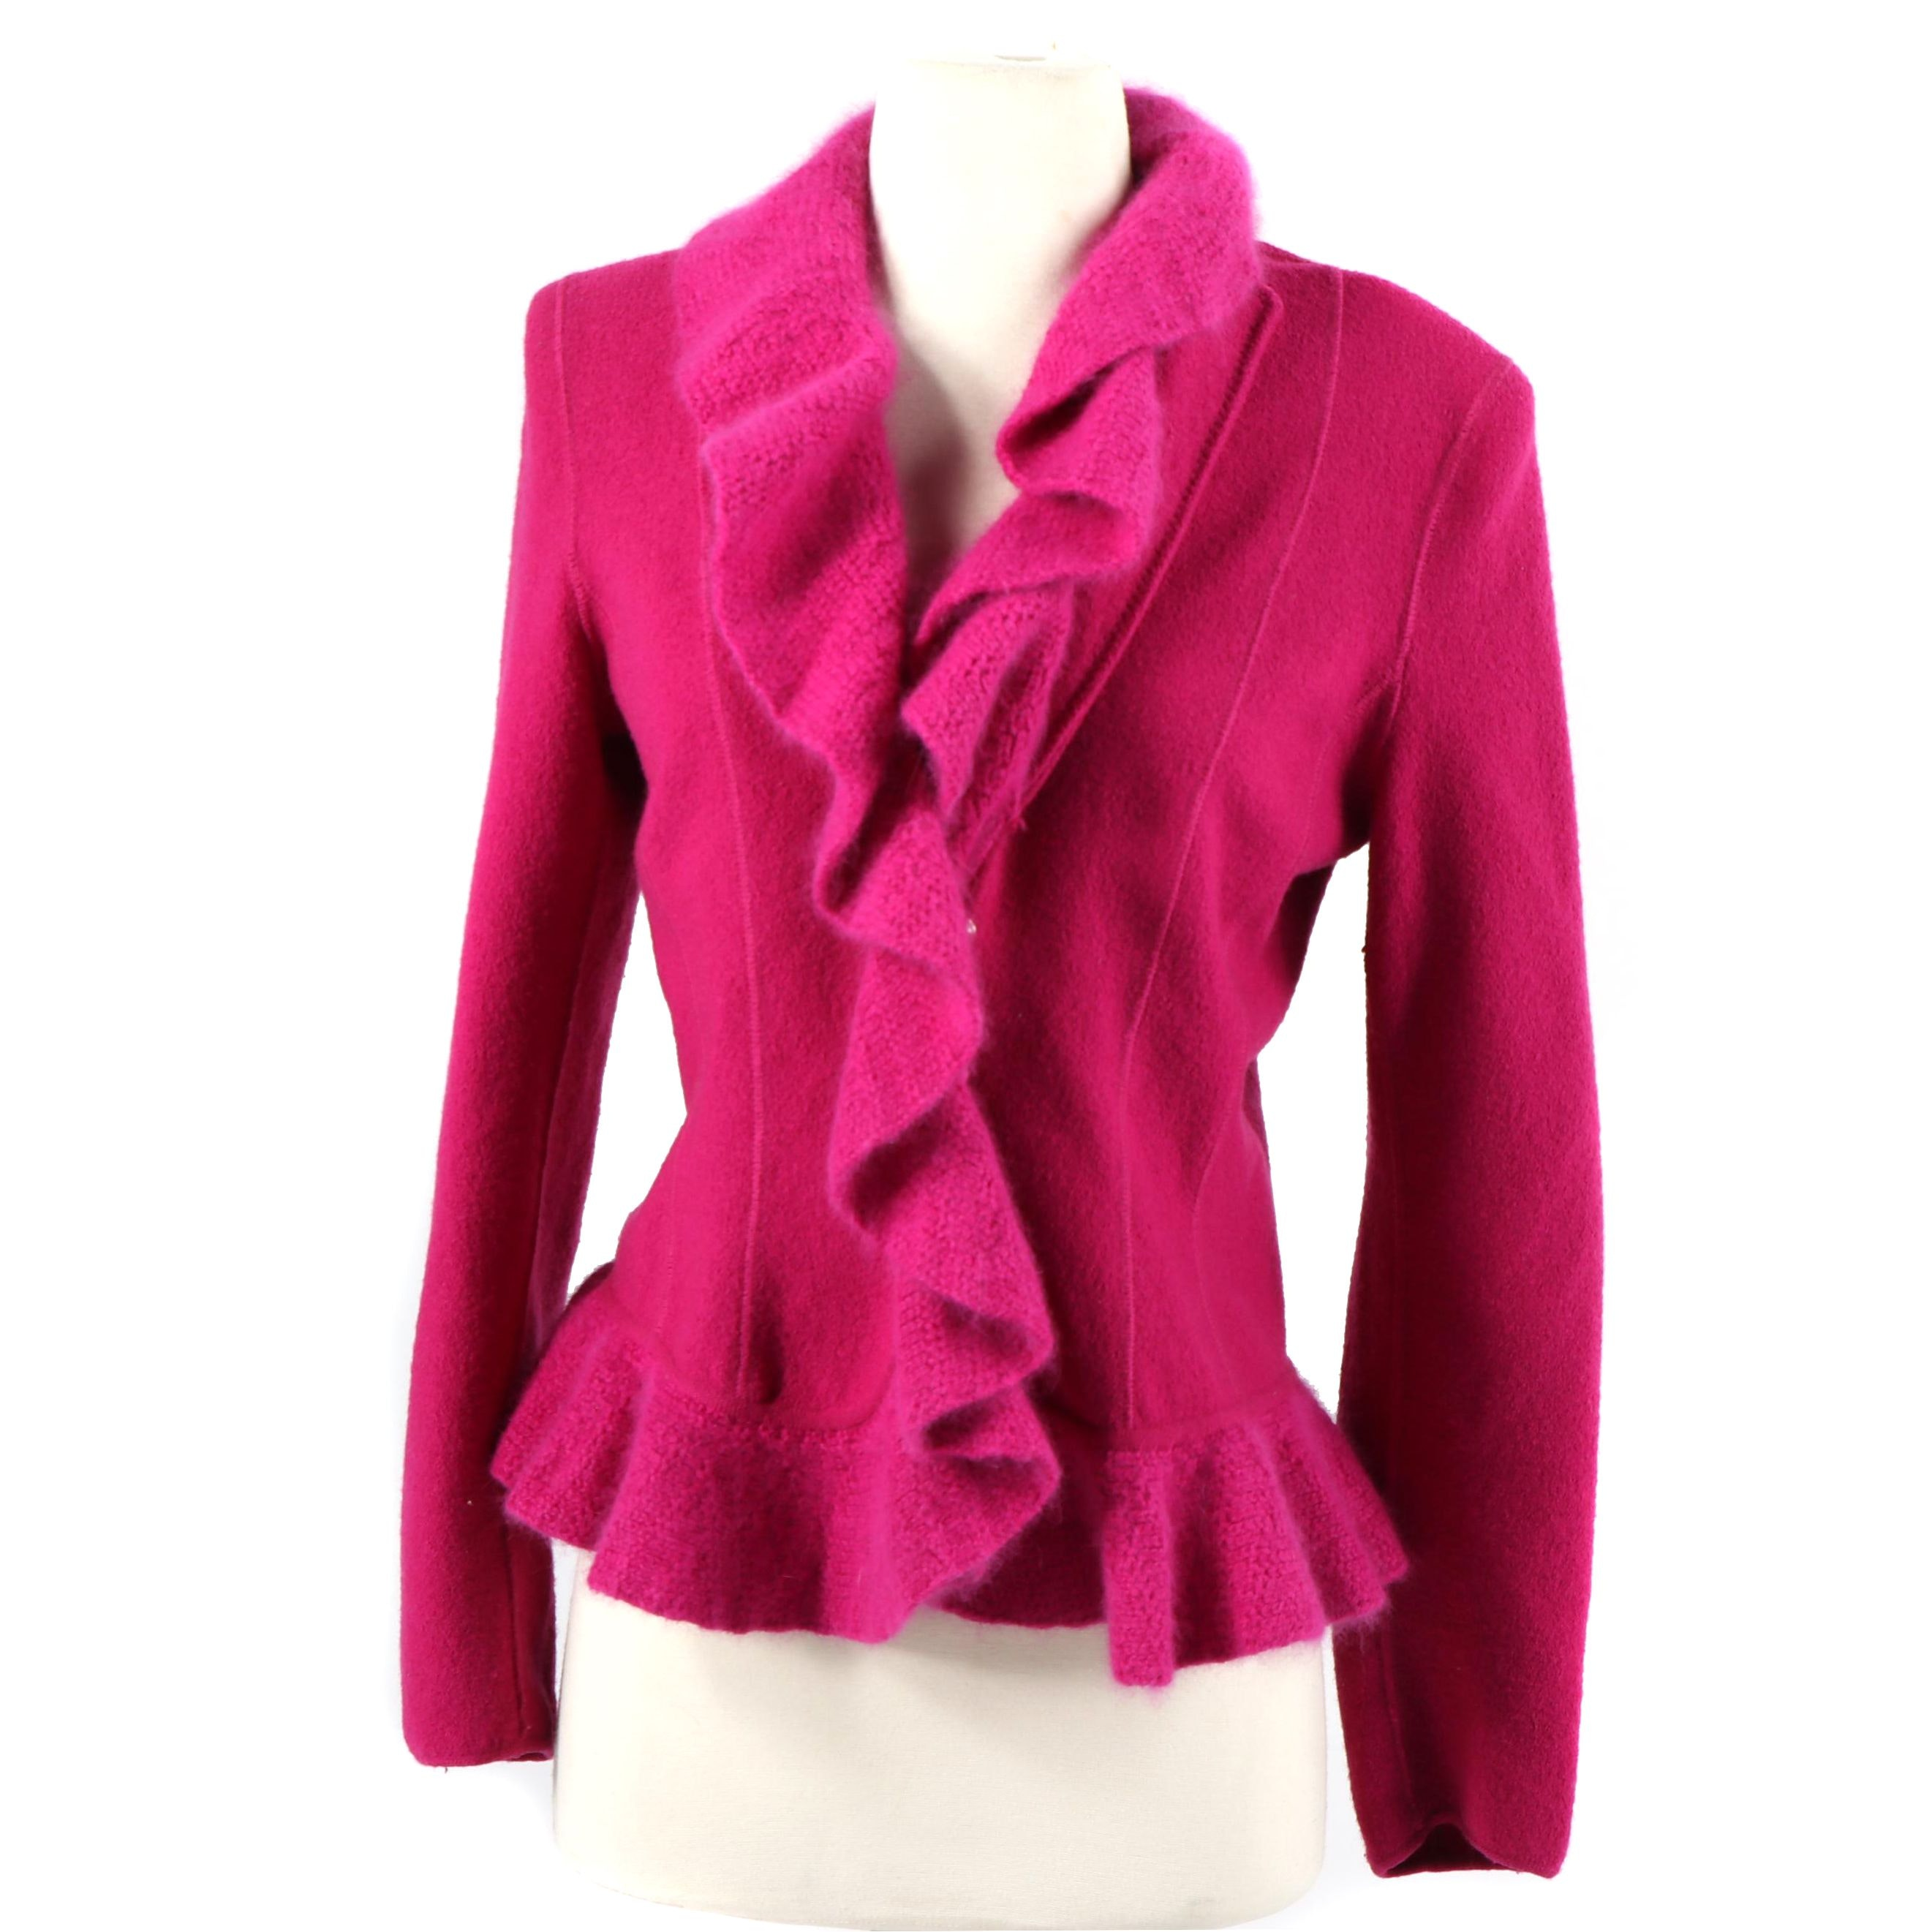 AX Armani Exchange Fuchsia Wool and Angora Blend Ruffled Sweater Jacket